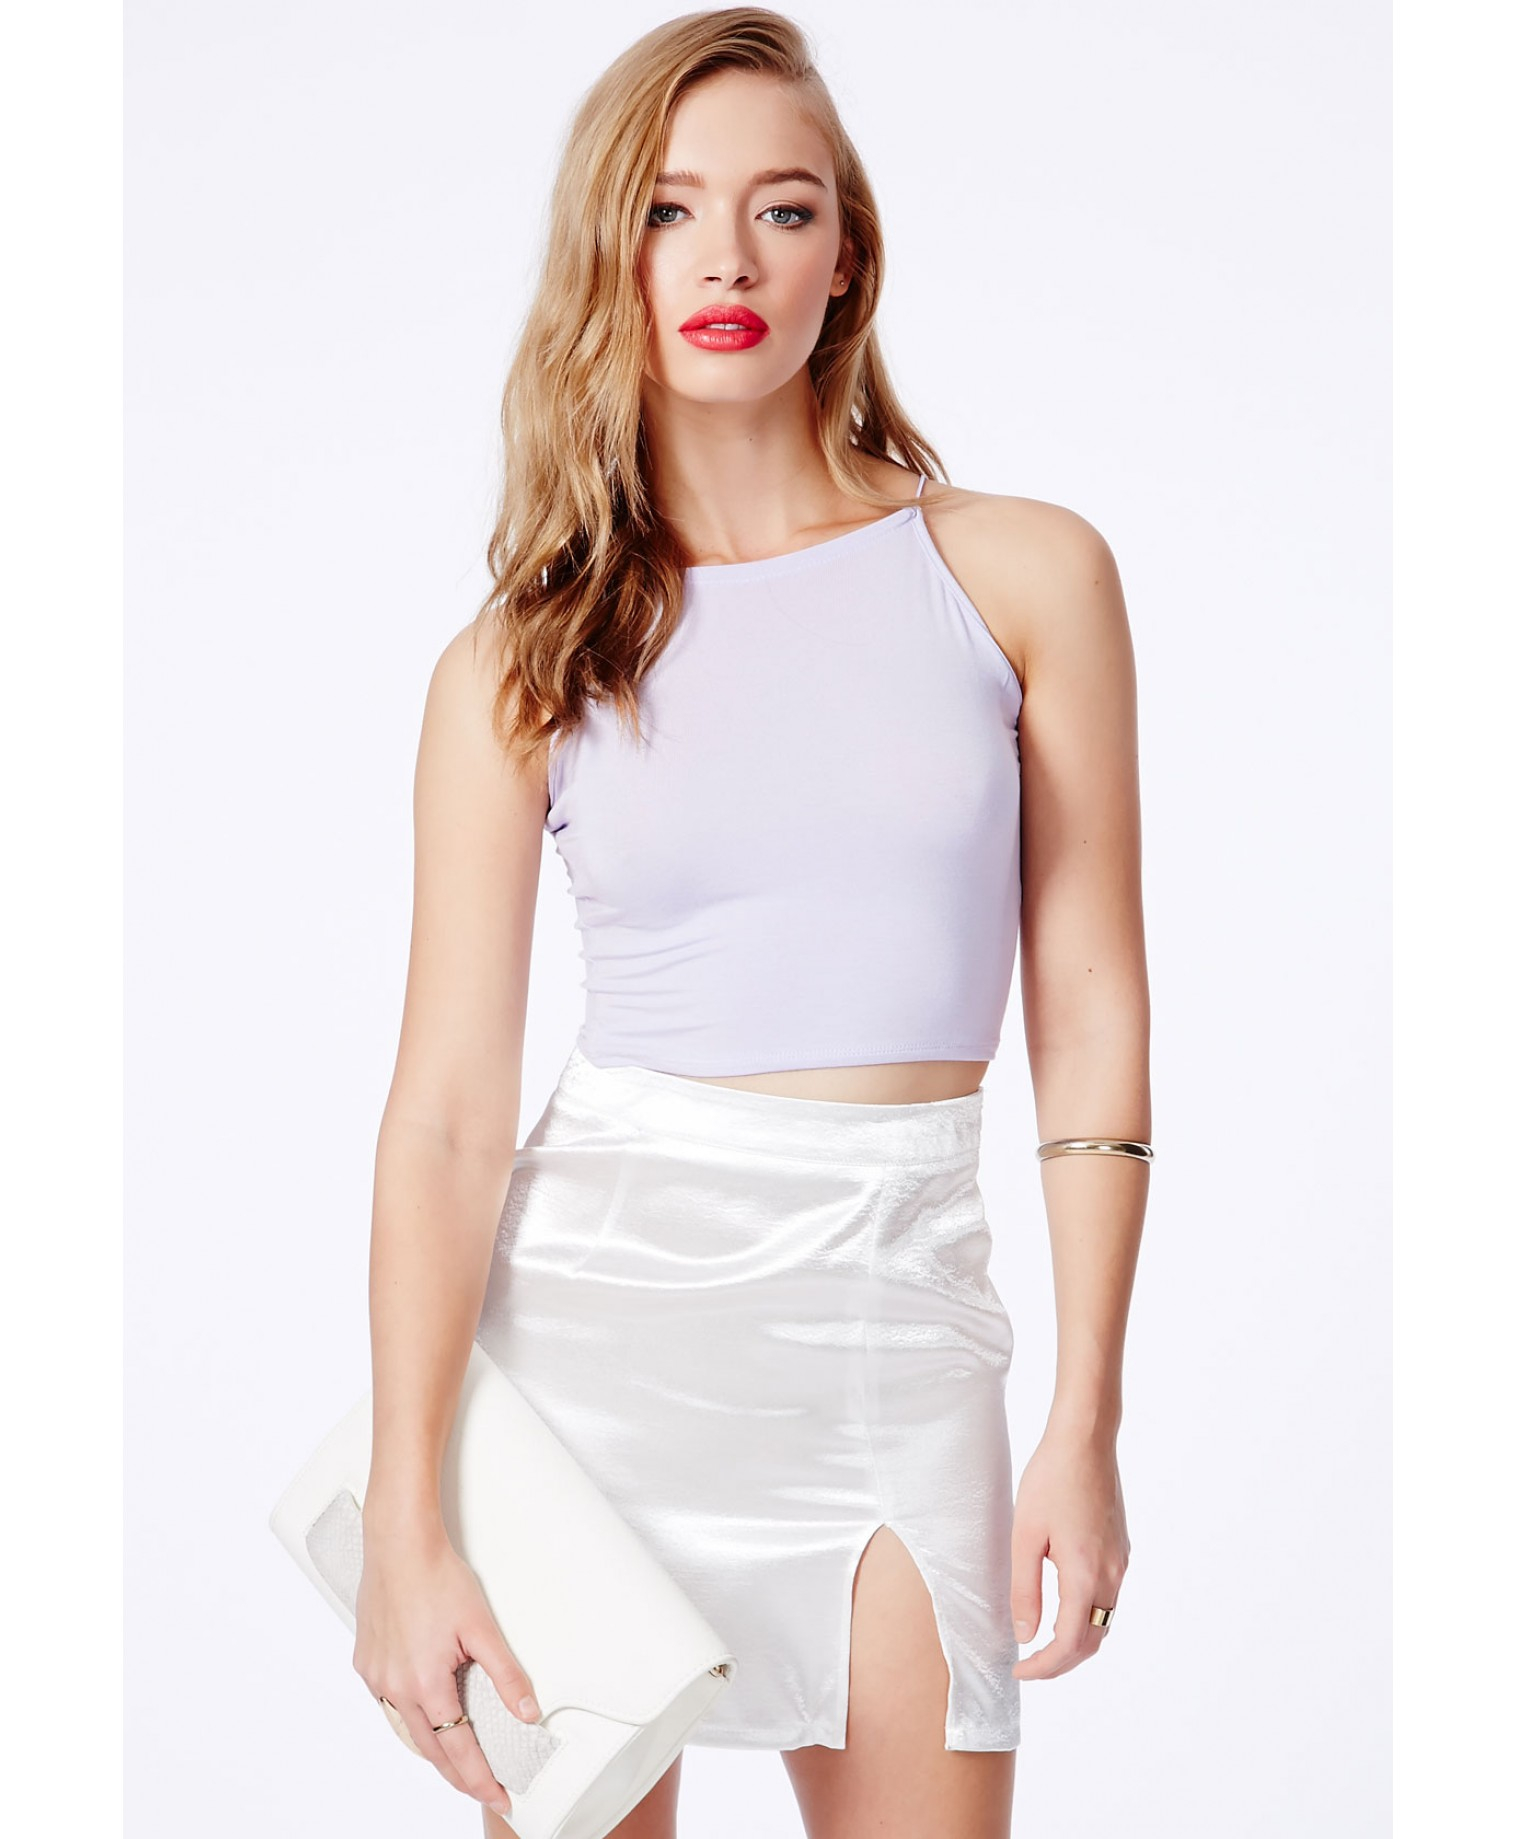 Missguided Mintare Crop Top With Spaghetti Straps